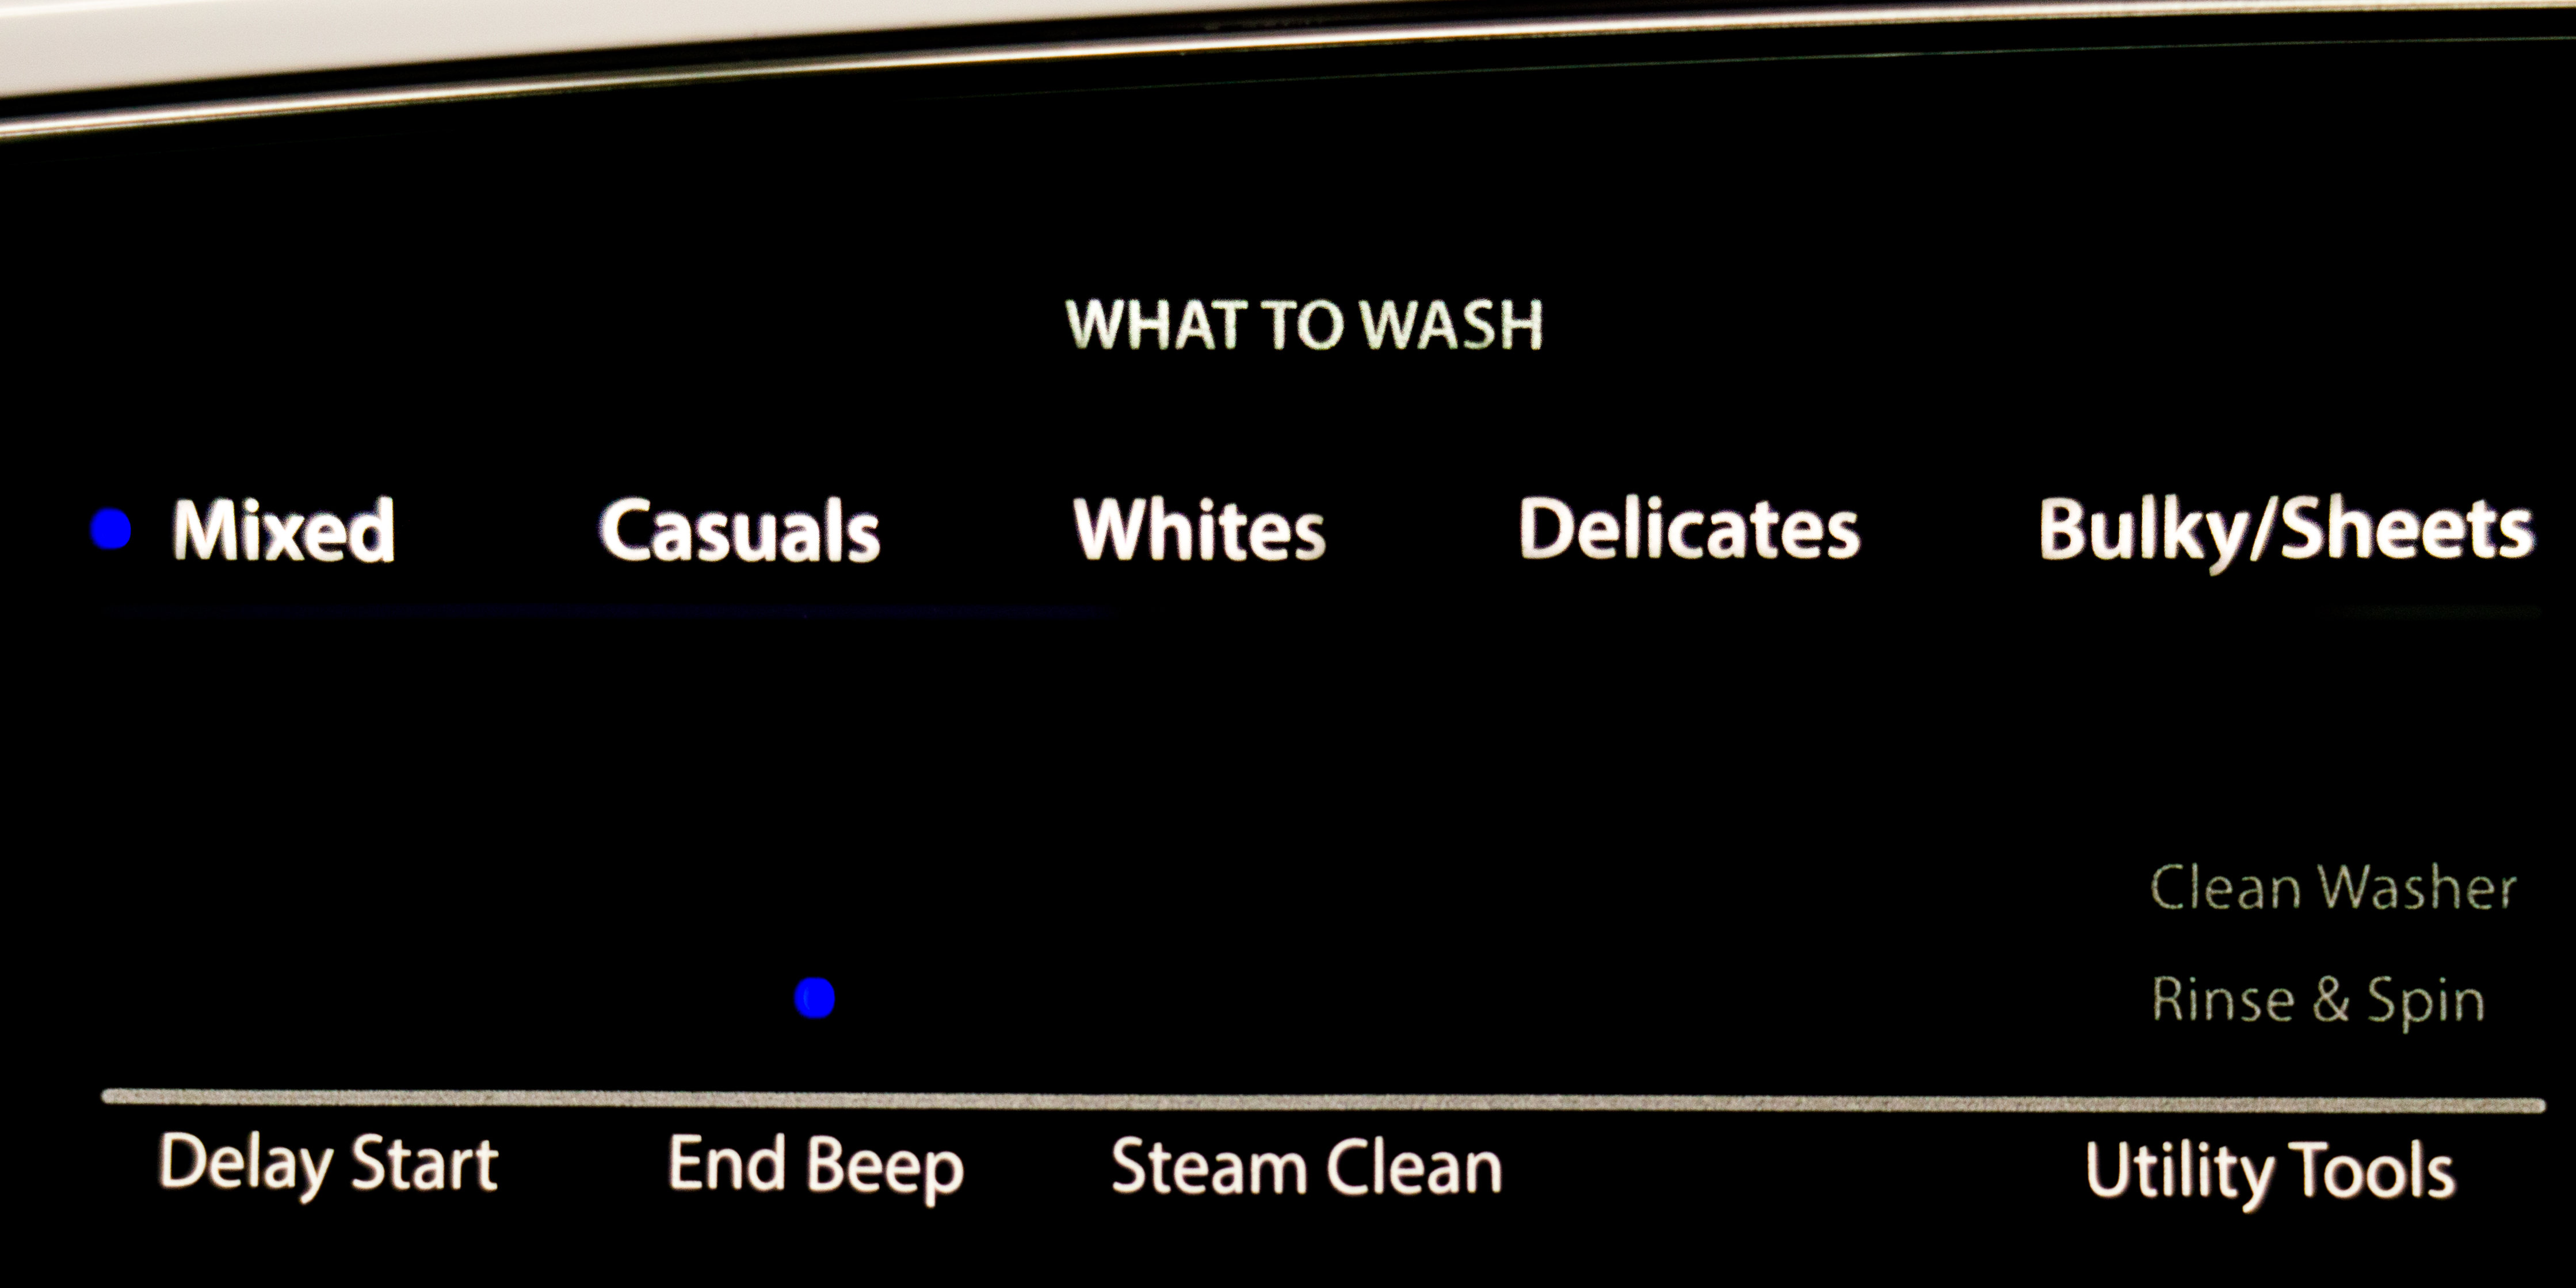 What do you want to wash?